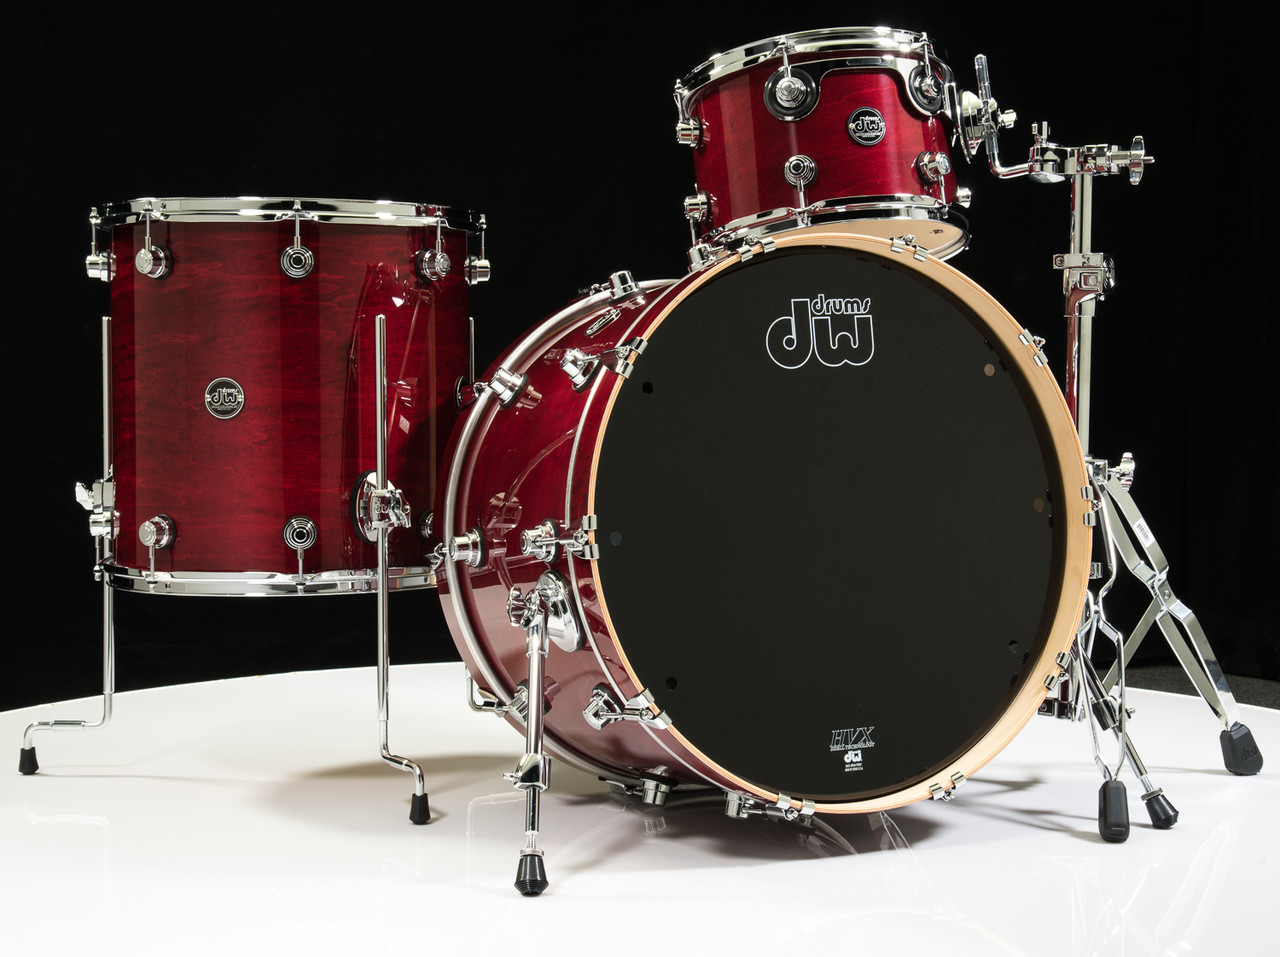 dw performance series 3pc drum kit cherry stain 12 16 22 shallow. Black Bedroom Furniture Sets. Home Design Ideas